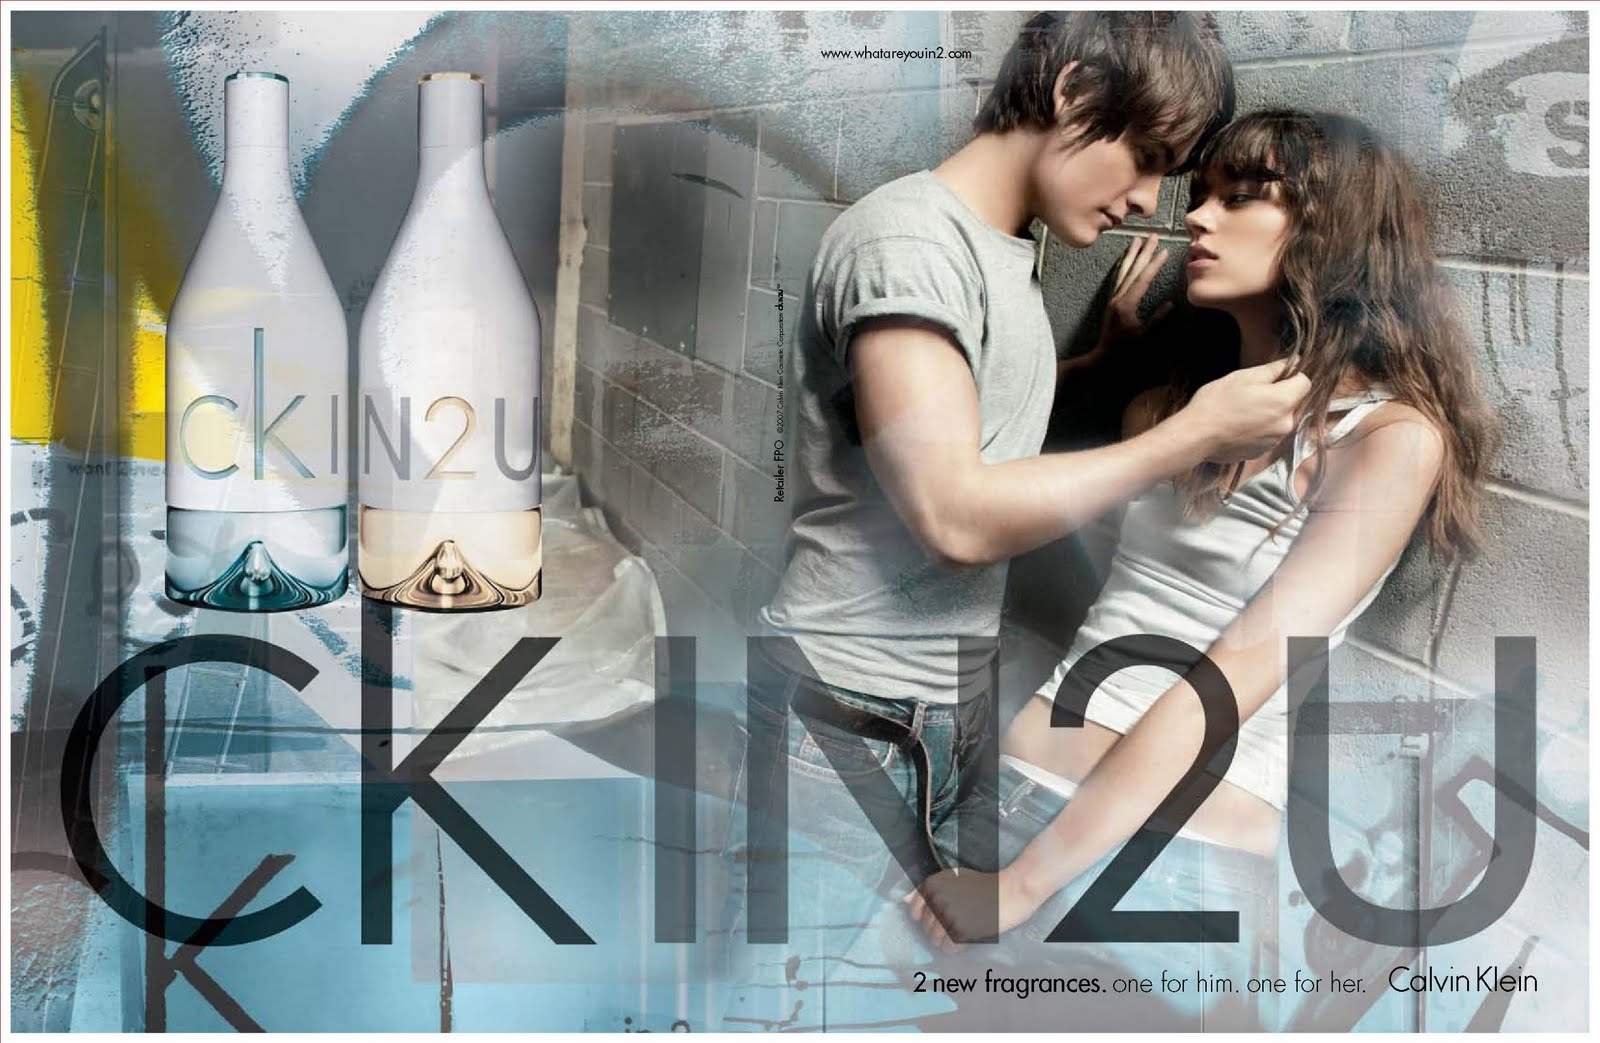 SHOPPING HEAVEN DOT NET: *New* CKIN2U For Him & For Her Fragrance ~ Retail  Packaging